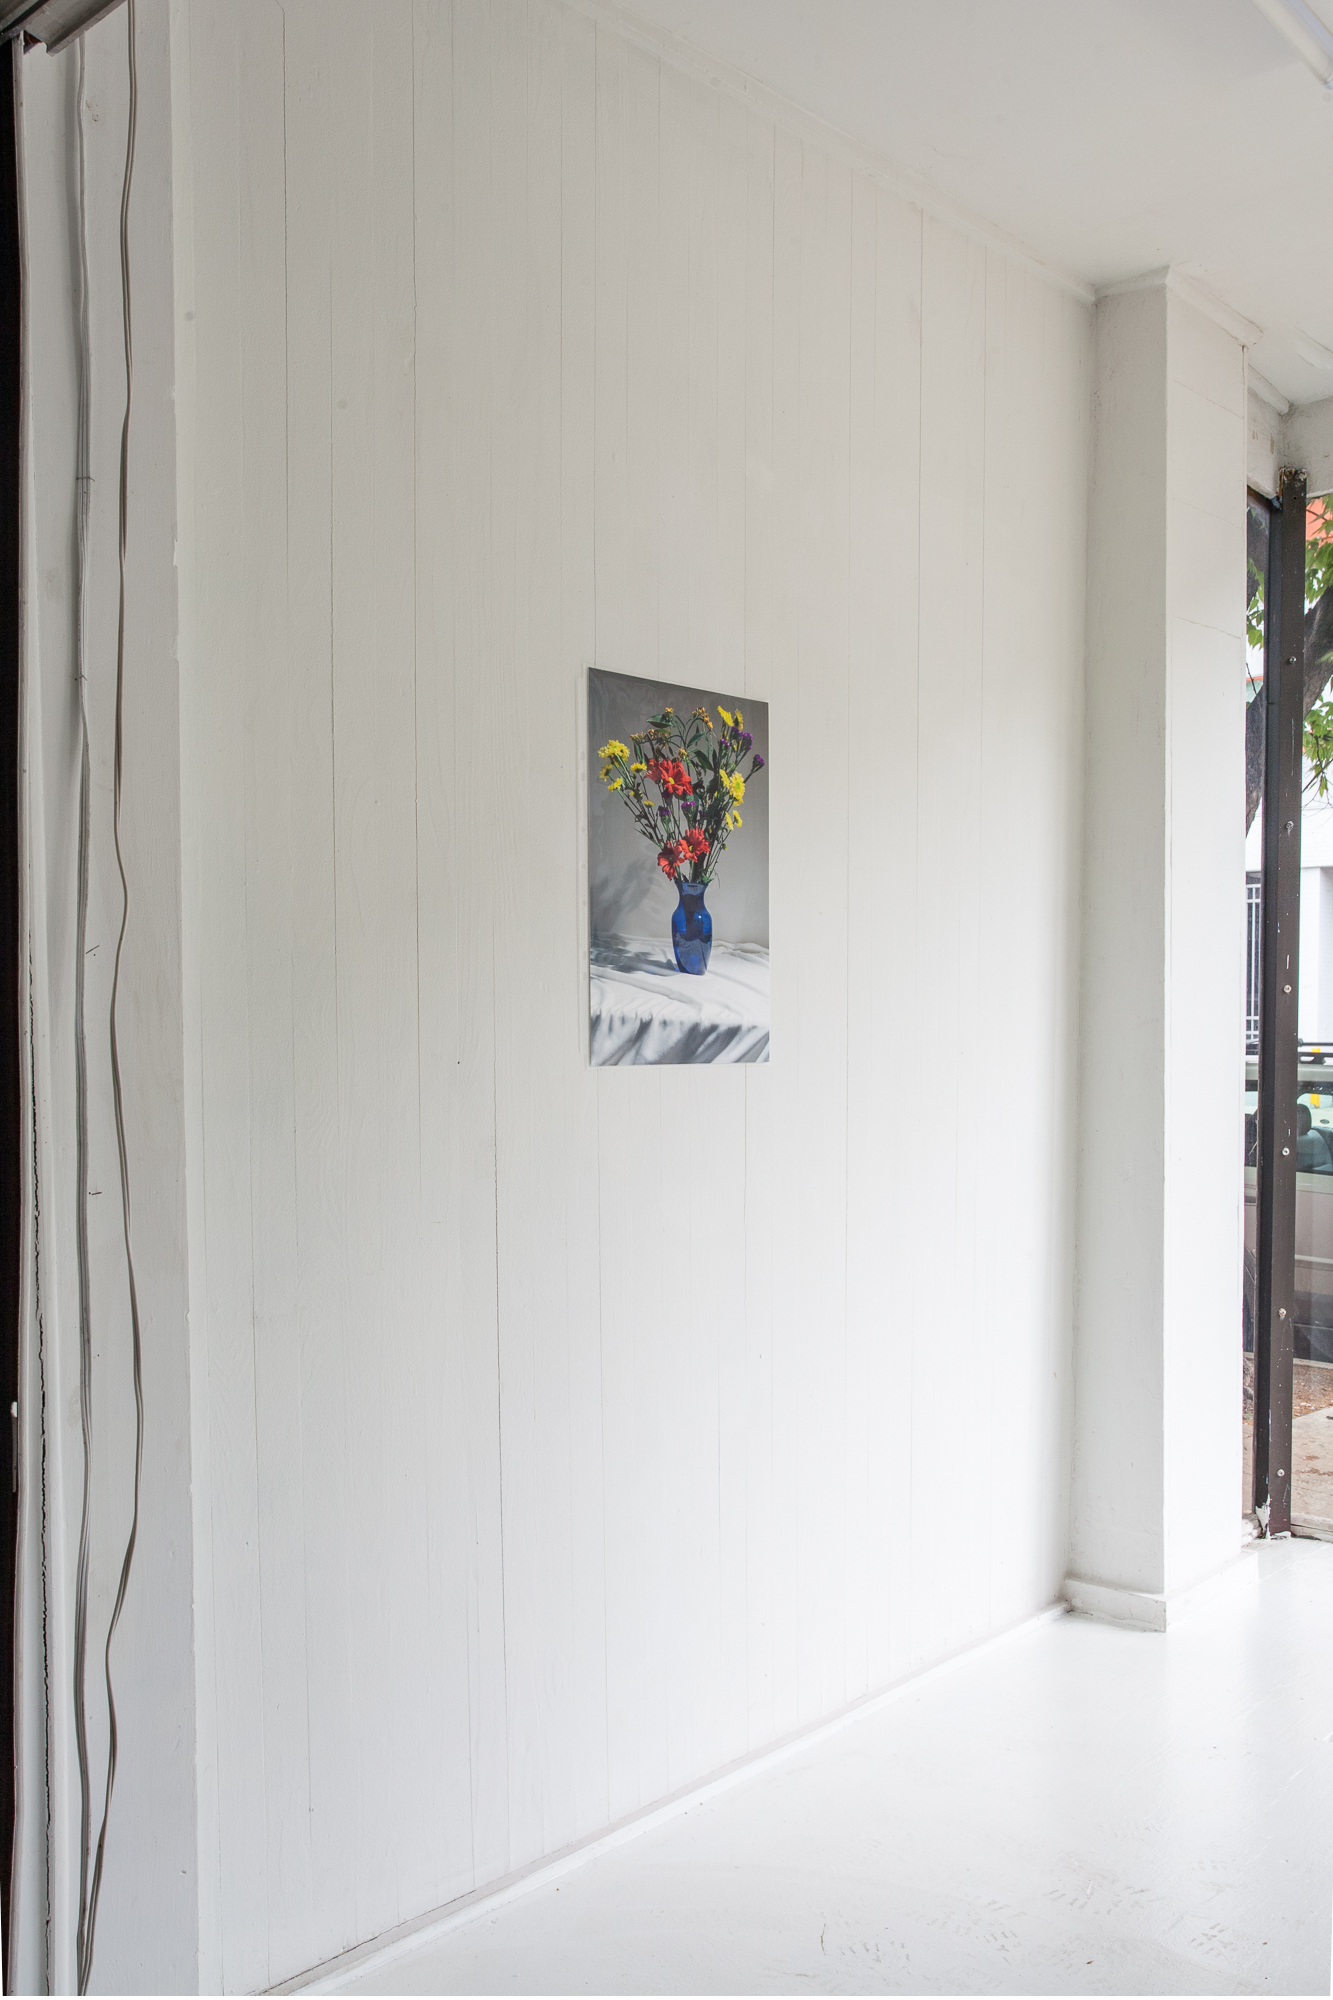 Mobile , 2018, Open Space, Baltimore, installation view